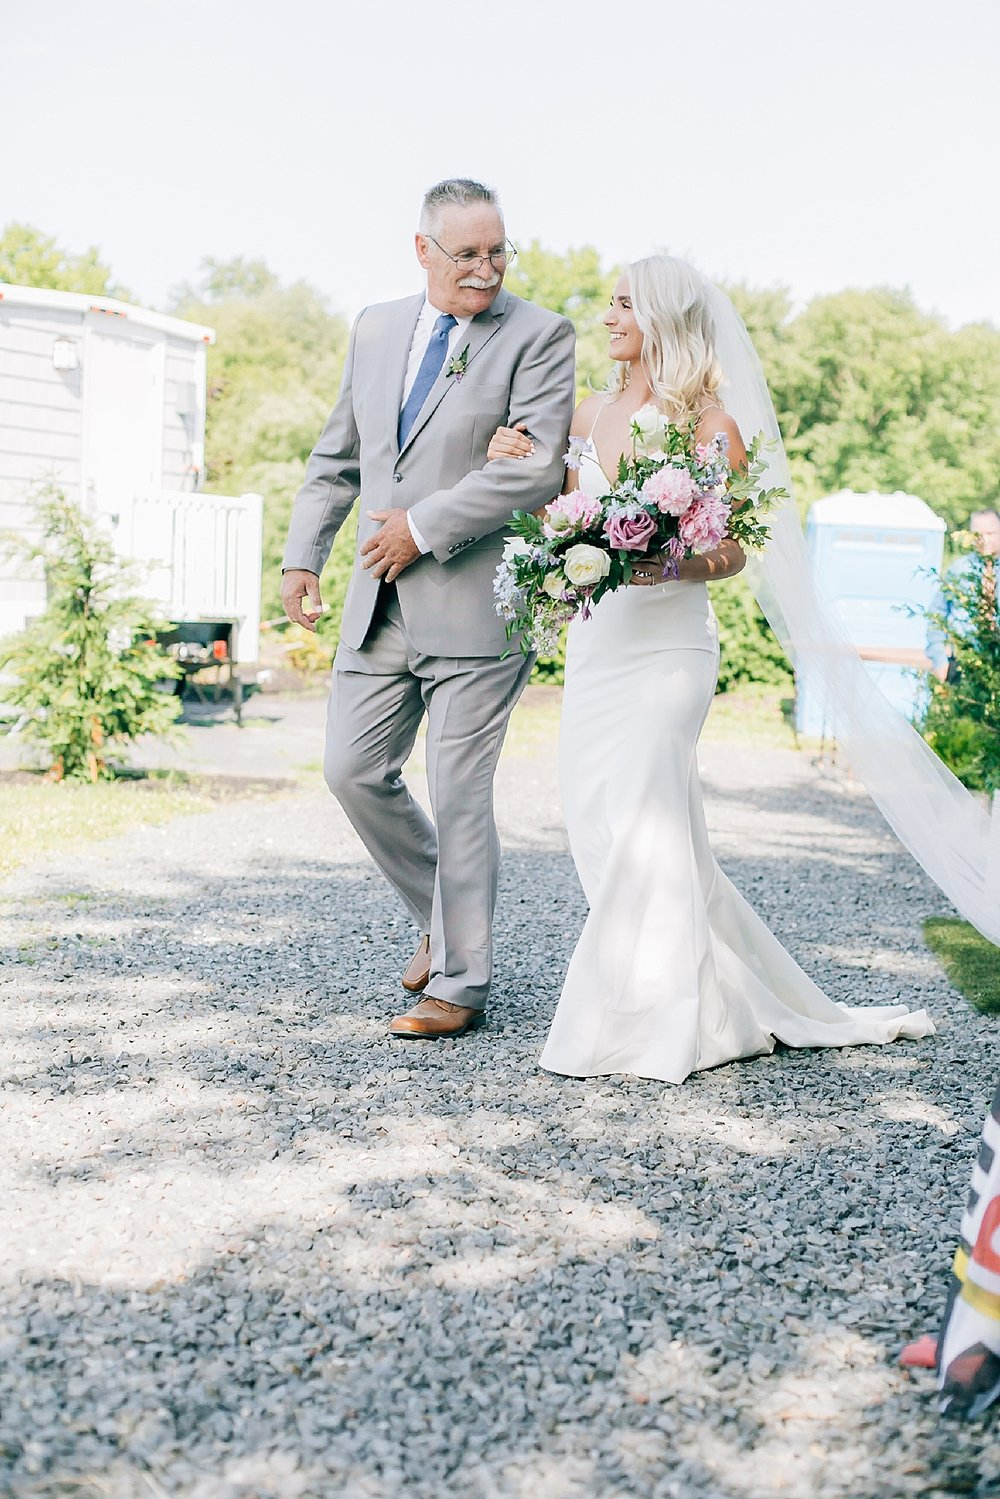 A Unique Outdoor Summer Wedding at Bast Brothers Garden Center by Magdalena Studios_0033.jpg